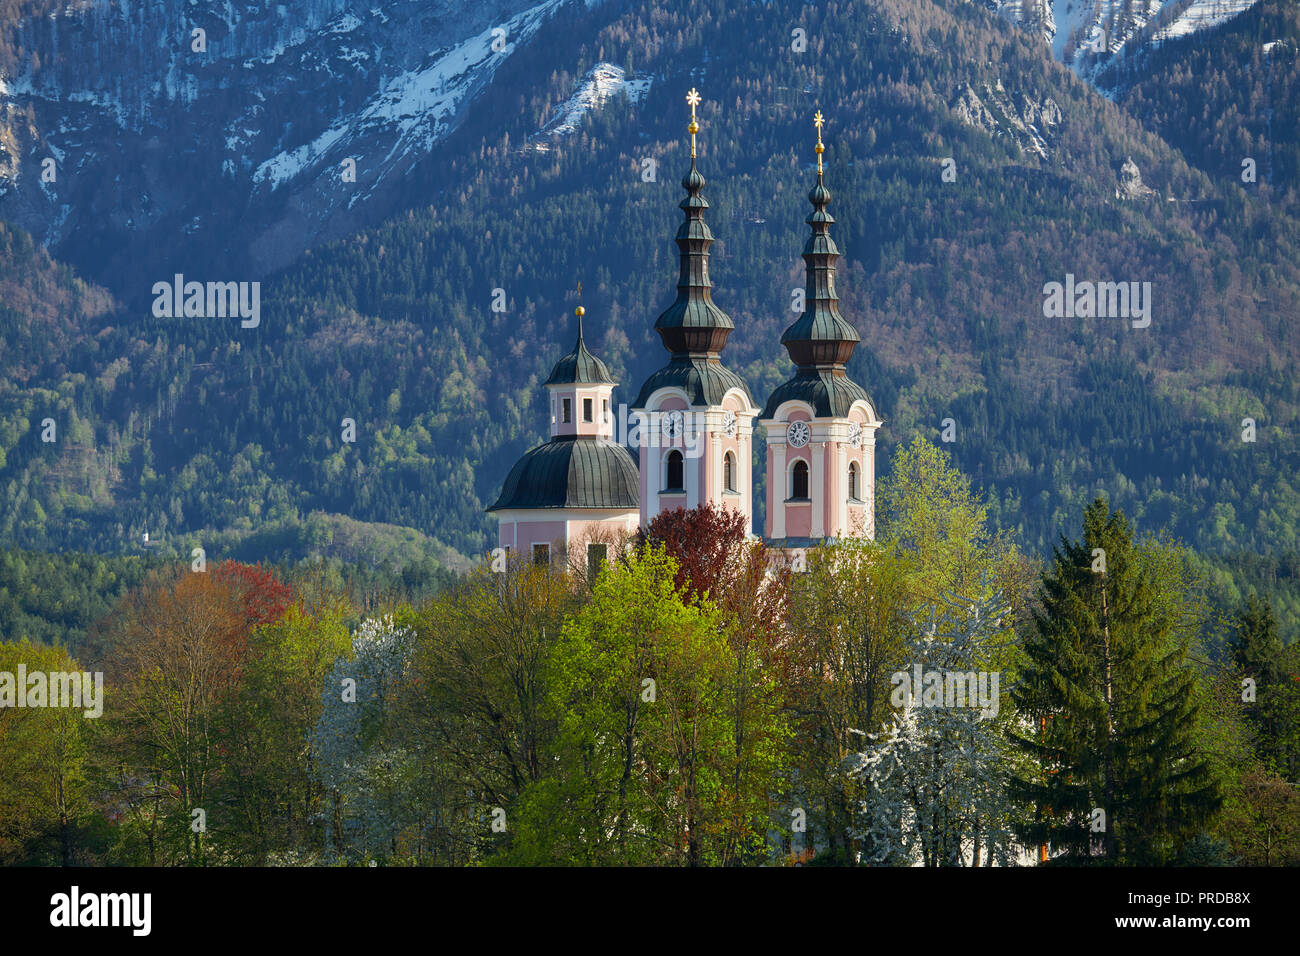 Pilgrimage Church to the Holy Cross, Villach, Carinthia, Austria - Stock Image